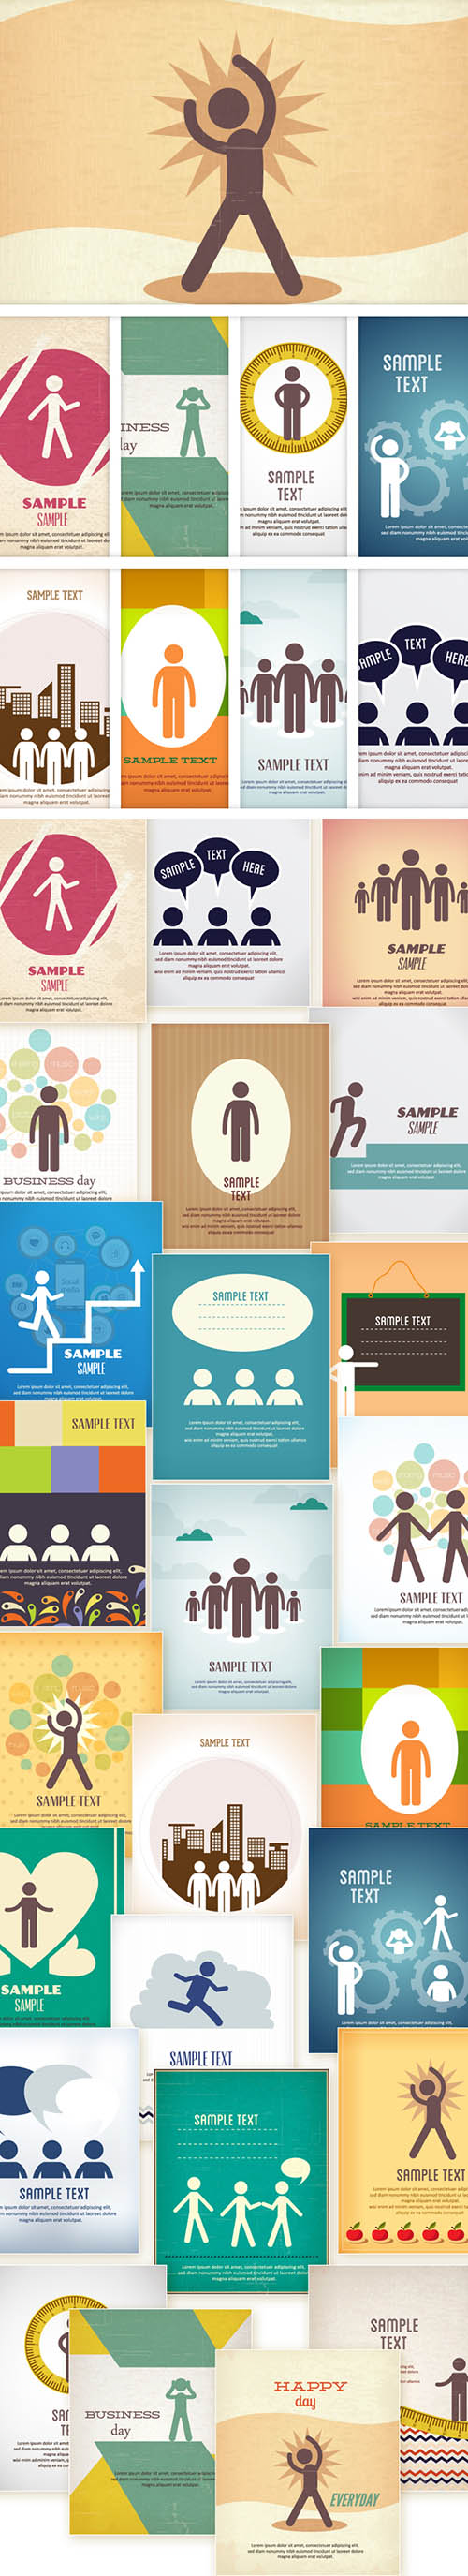 25 People Vector Illustrations